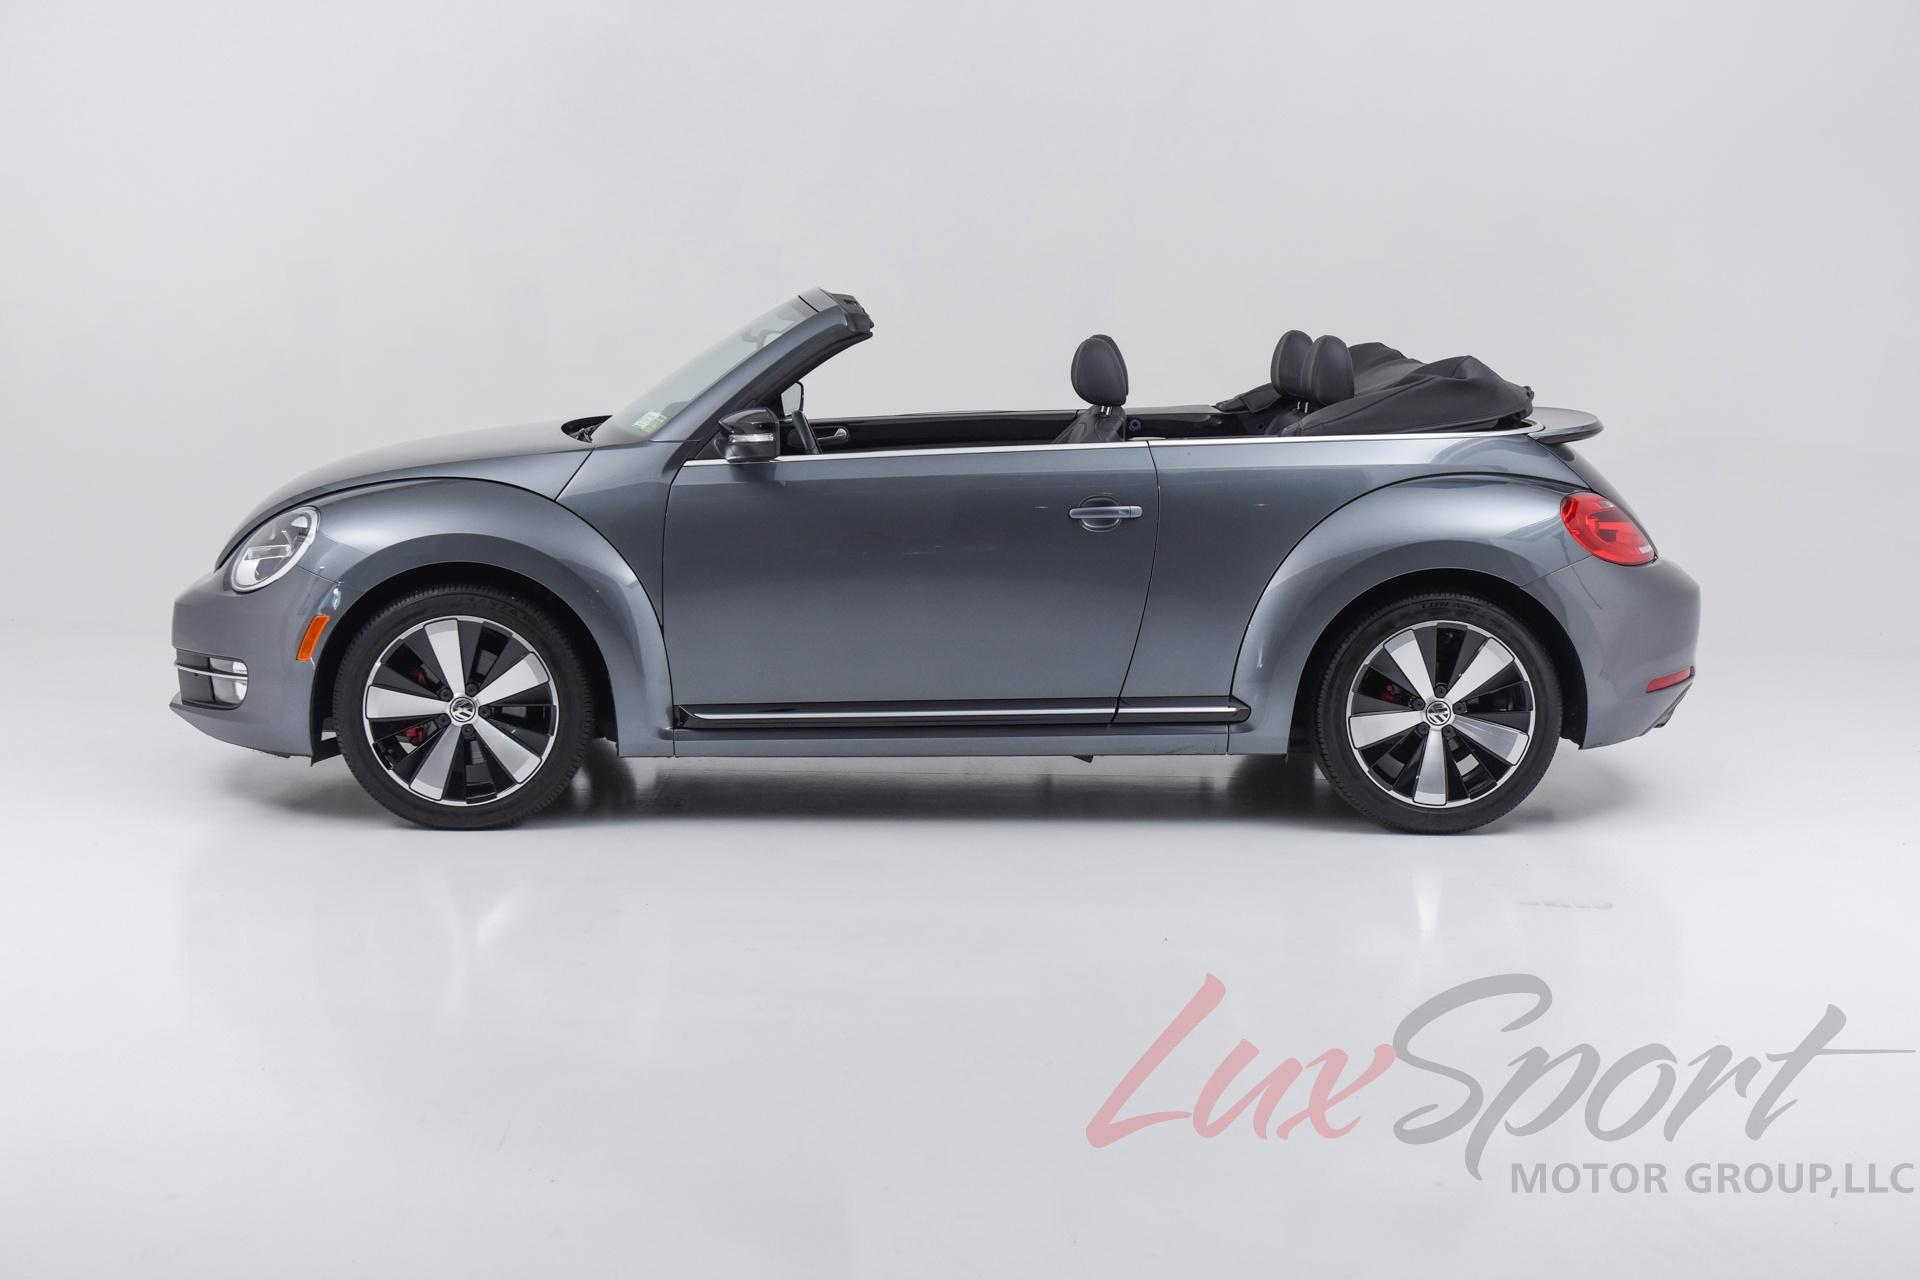 2013 volkswagen beetle convertible turbo pzev stock 2014810966 for sale near new hyde park ny. Black Bedroom Furniture Sets. Home Design Ideas